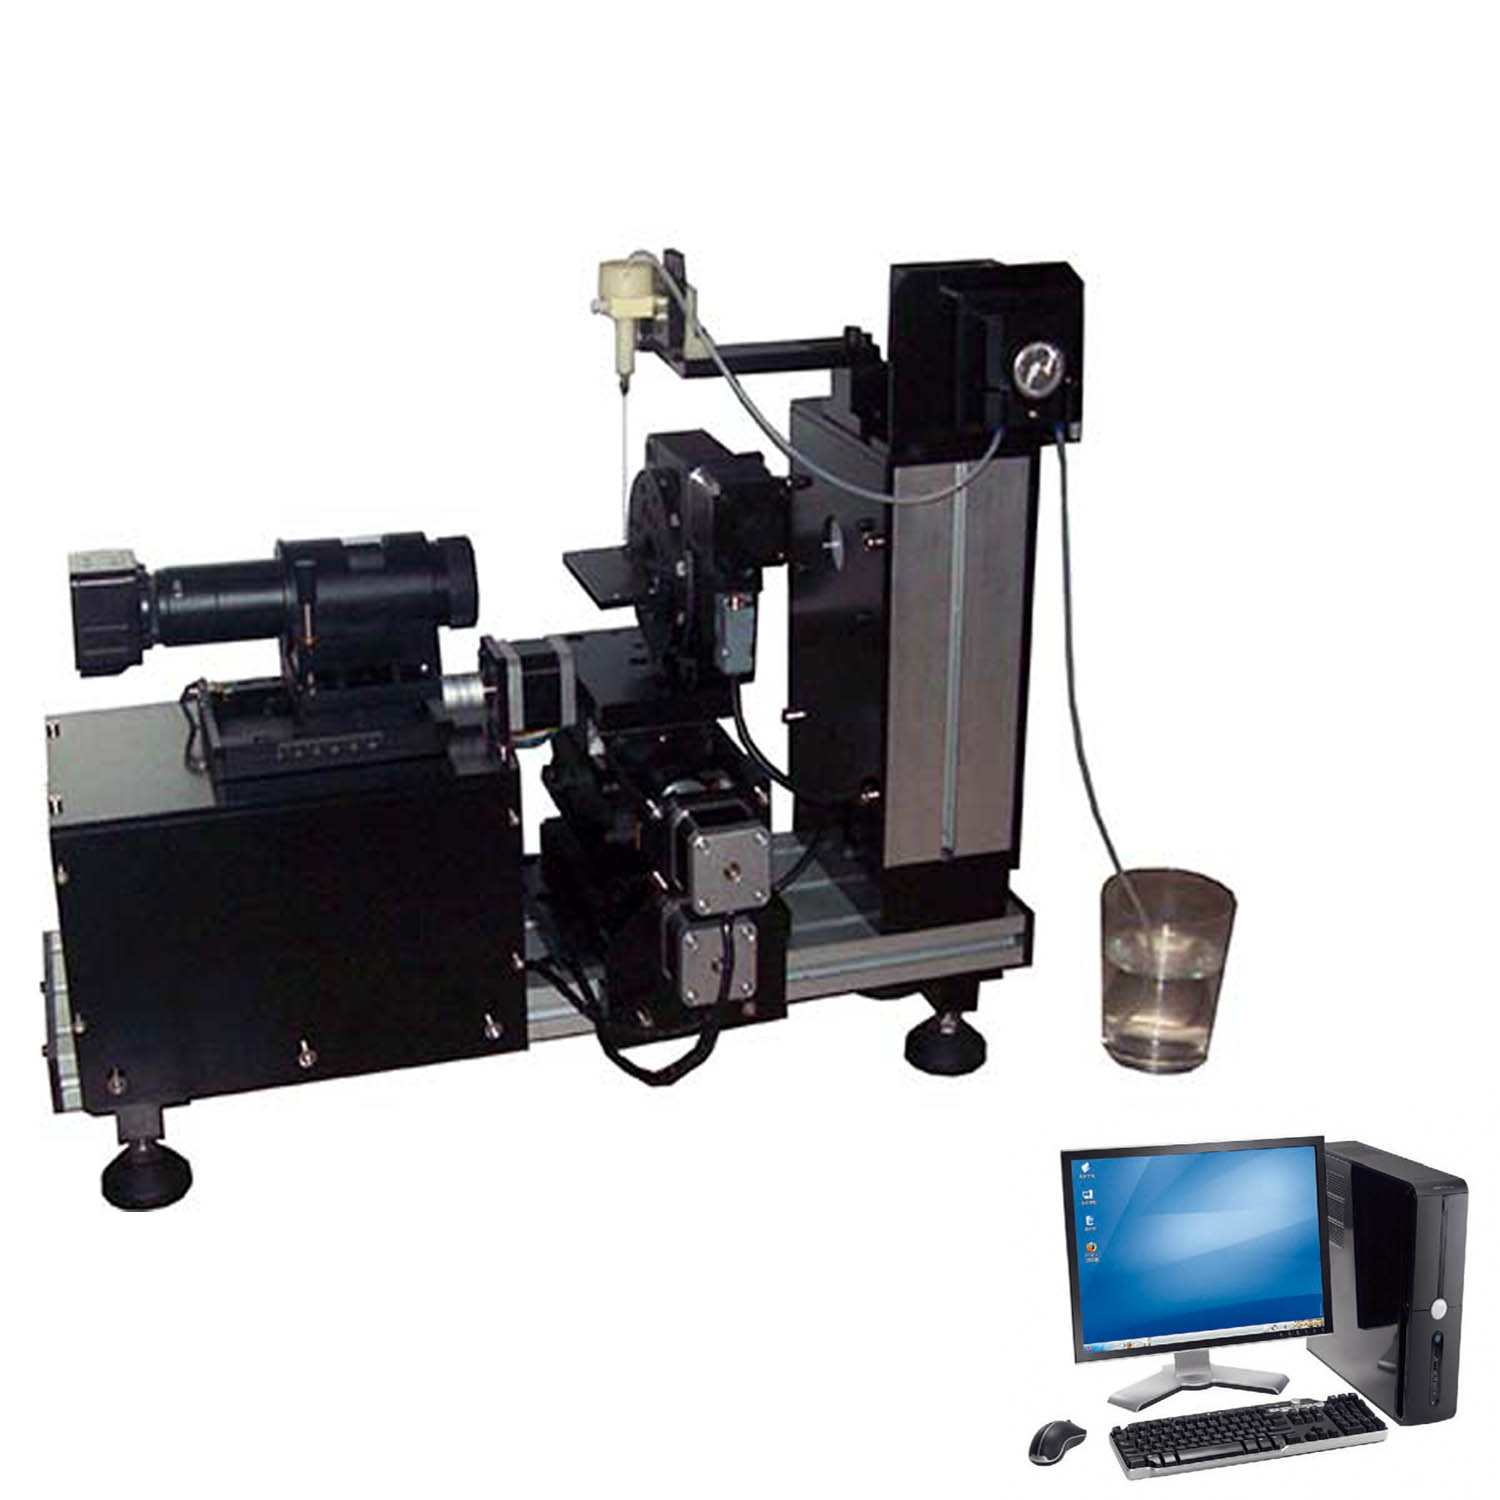 Cag200 contact angle tester tensiometer goniometer united test aloadofball Gallery